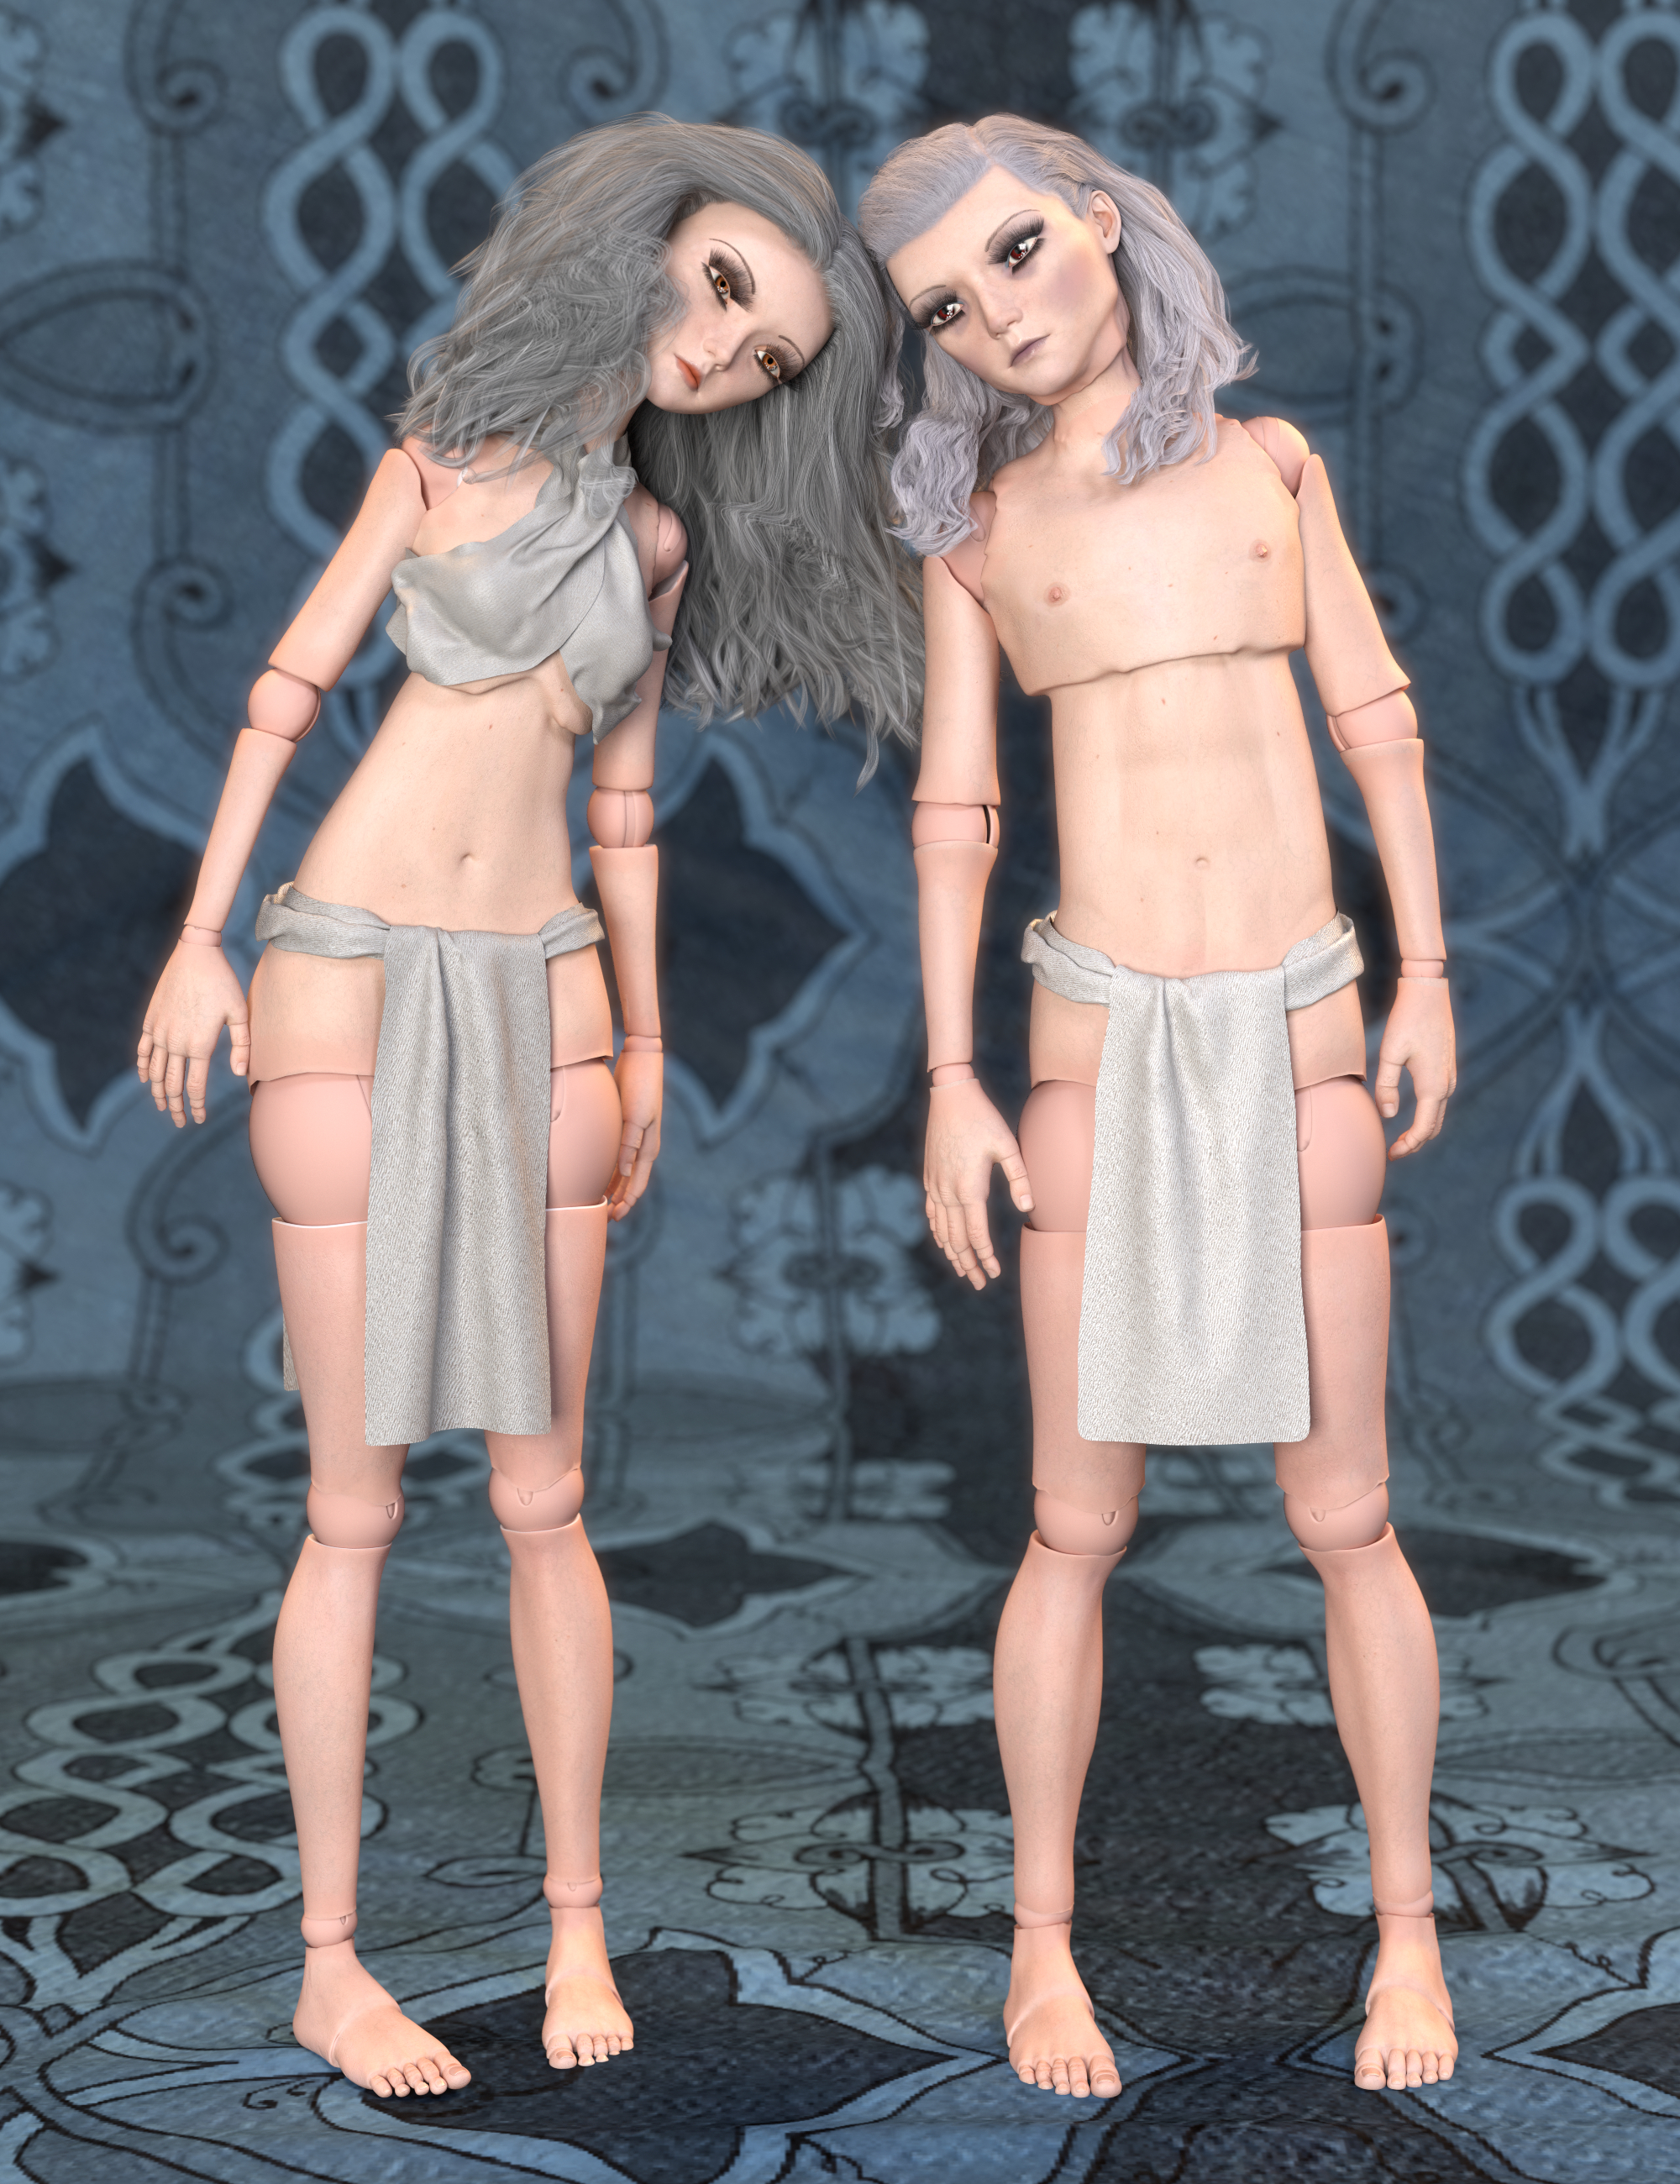 SF Ball Jointed Dolls for Genesis 8 and 8.1 by: SickleyieldFuseling, 3D Models by Daz 3D